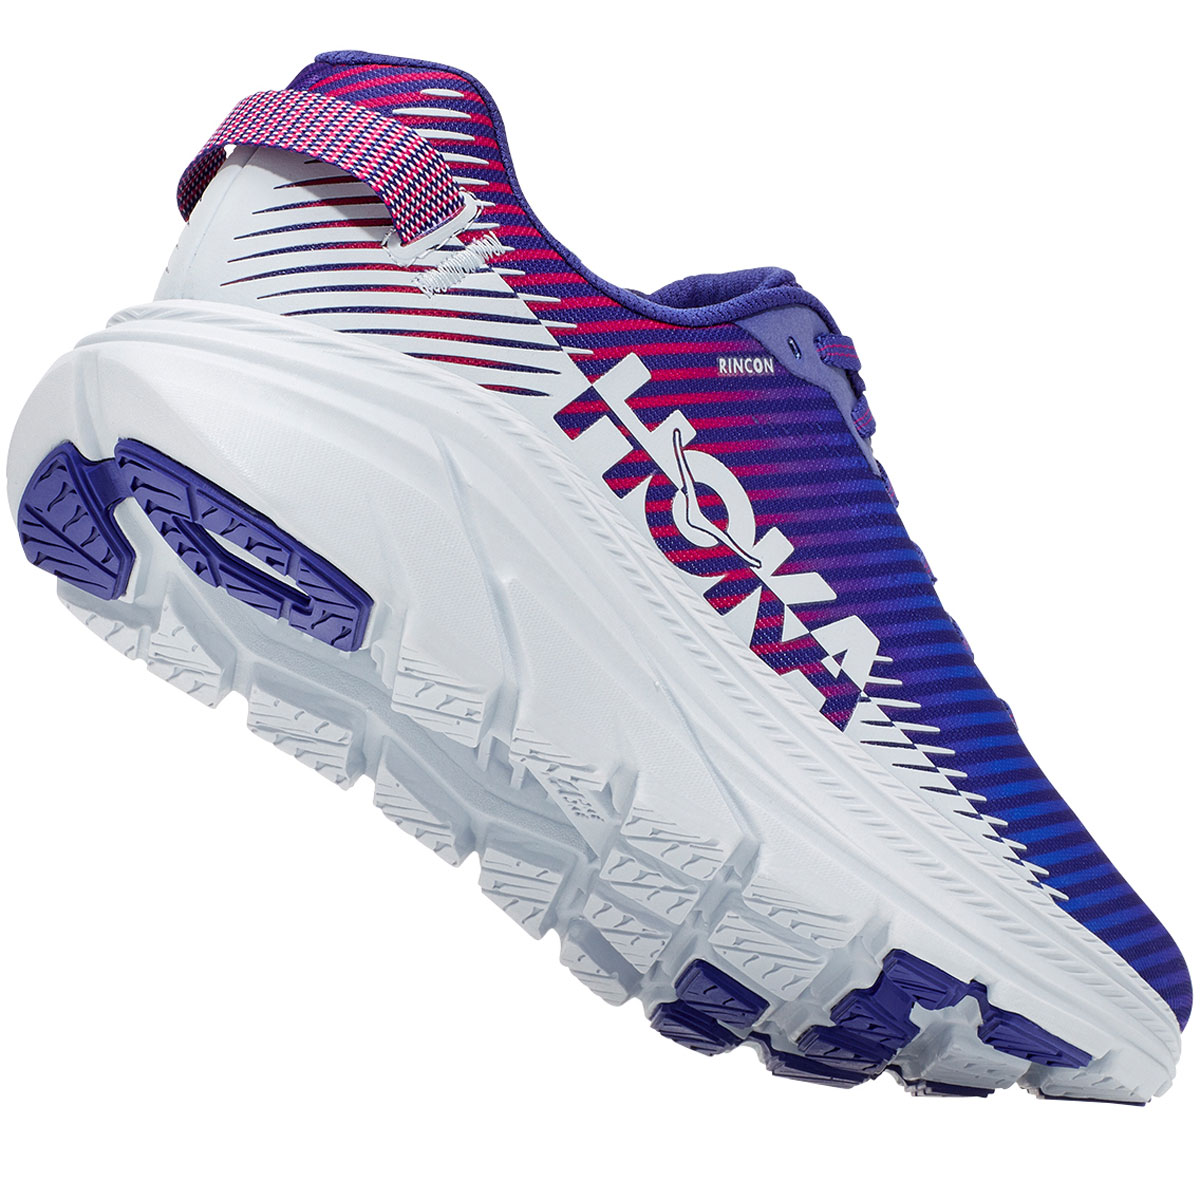 Women's Hoka One One Rincon 2 Running Shoe - Color: Clematis Blue - Size: 5 - Width: Regular, Clematis Blue, large, image 5